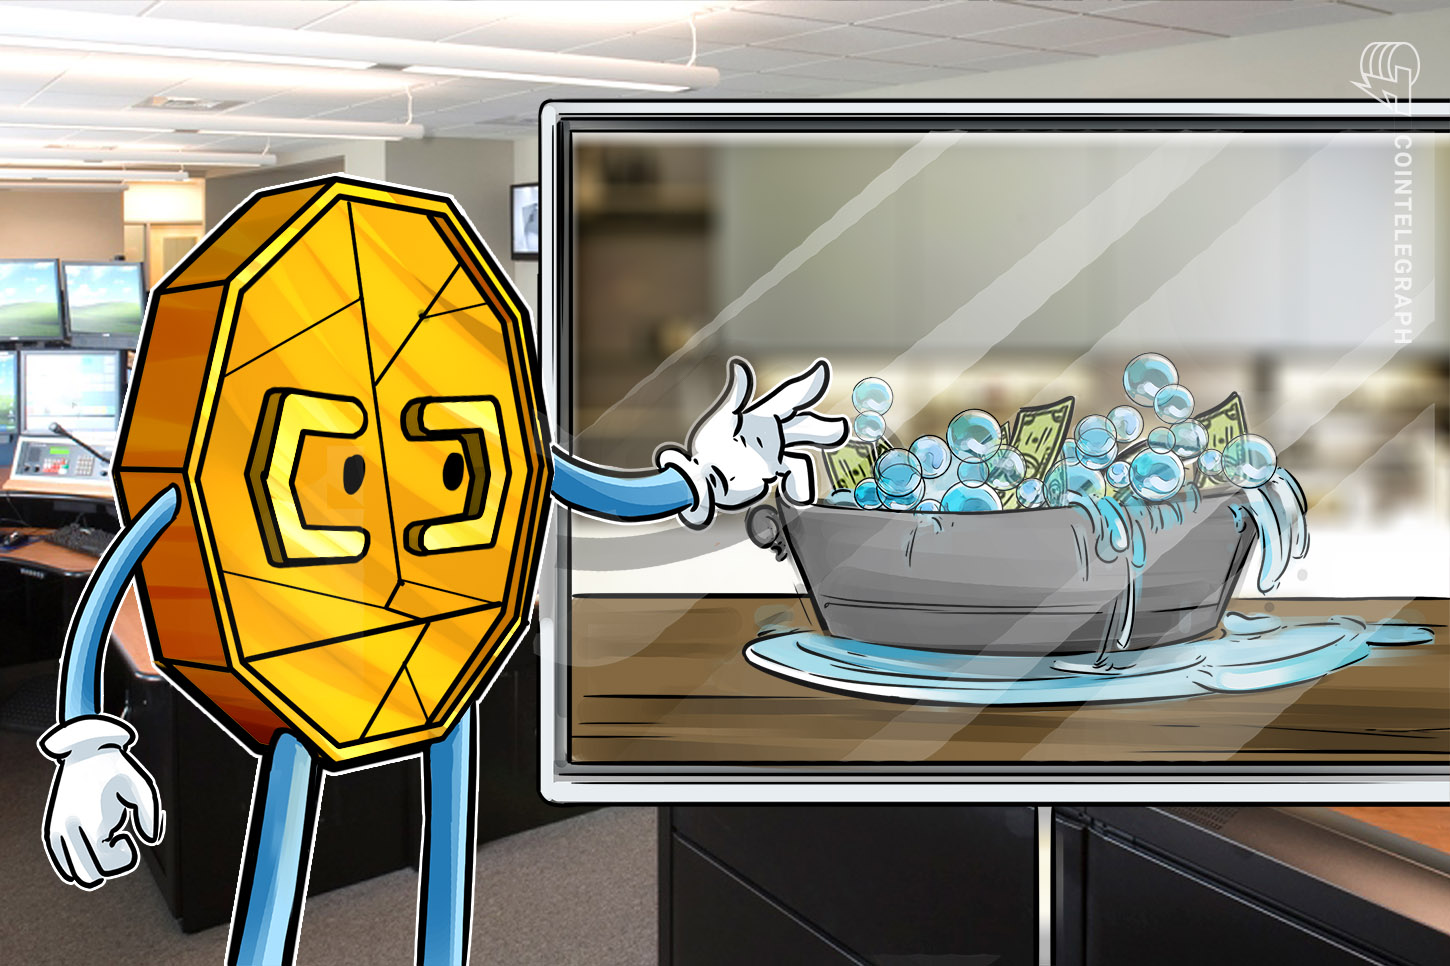 Privacy coins 'pose less risk of money laundering than other coins'